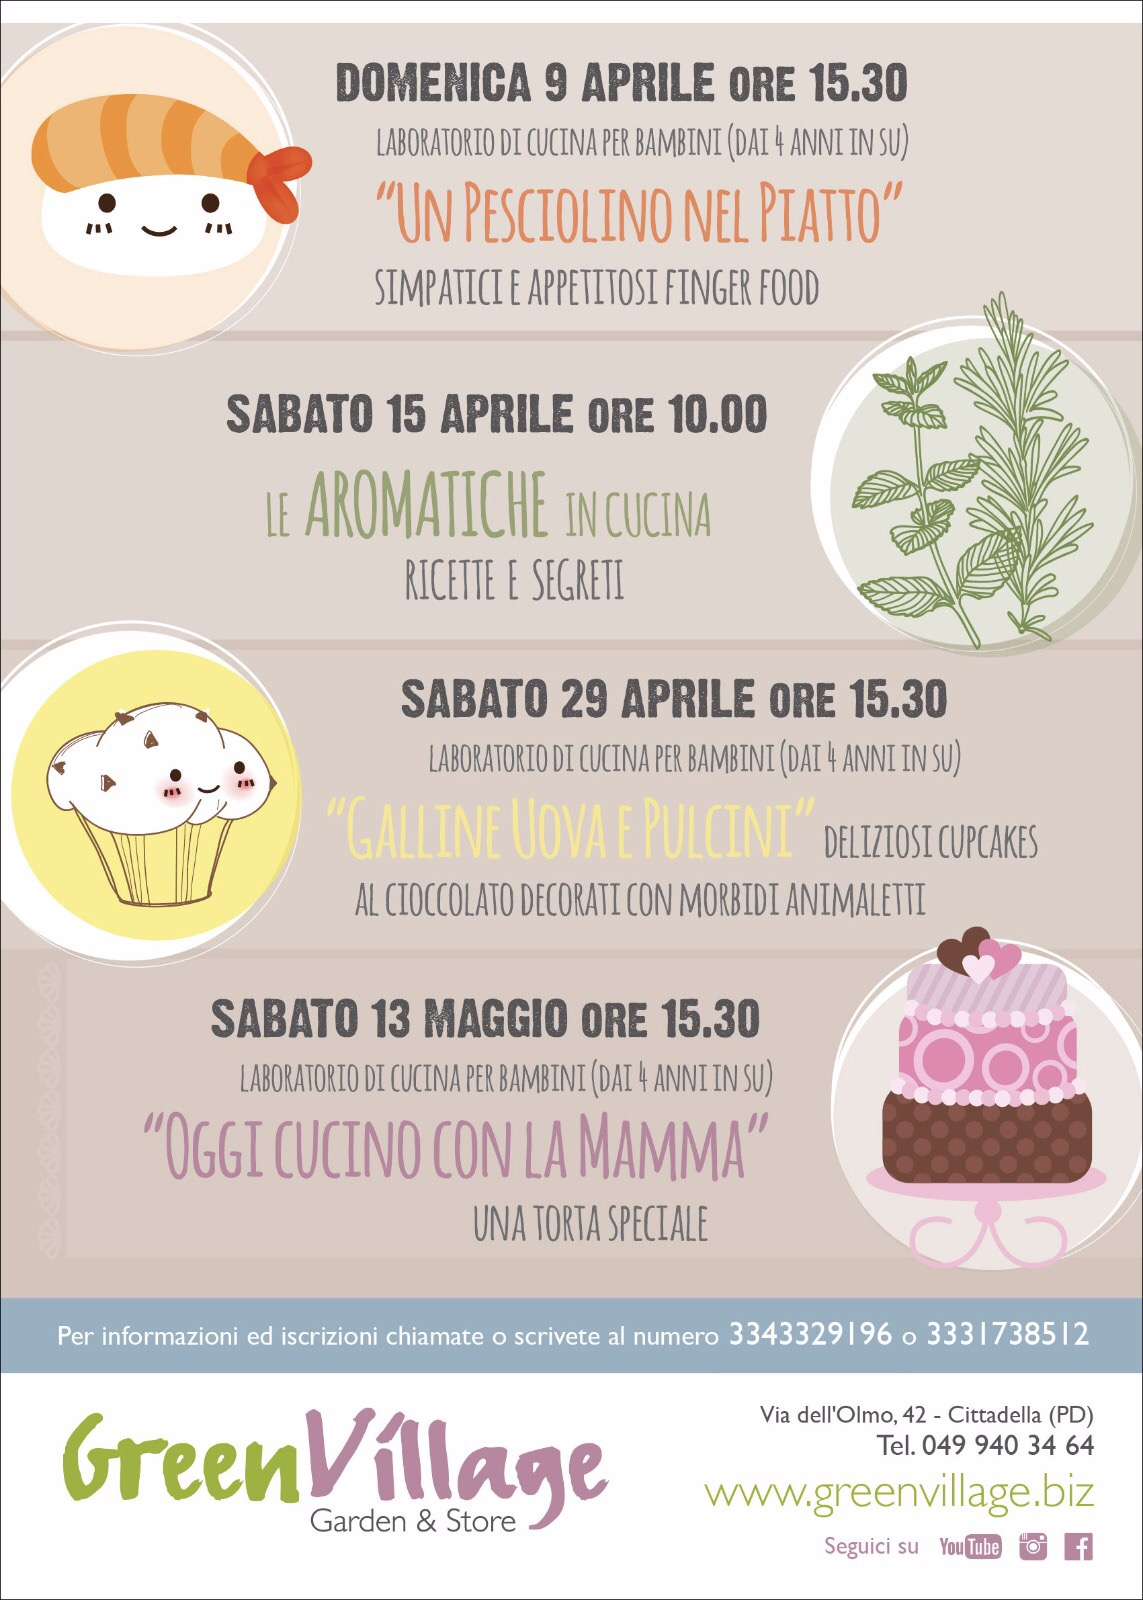 greenvillage-calendario-corsi-ed-eventi-primavera-2017-2